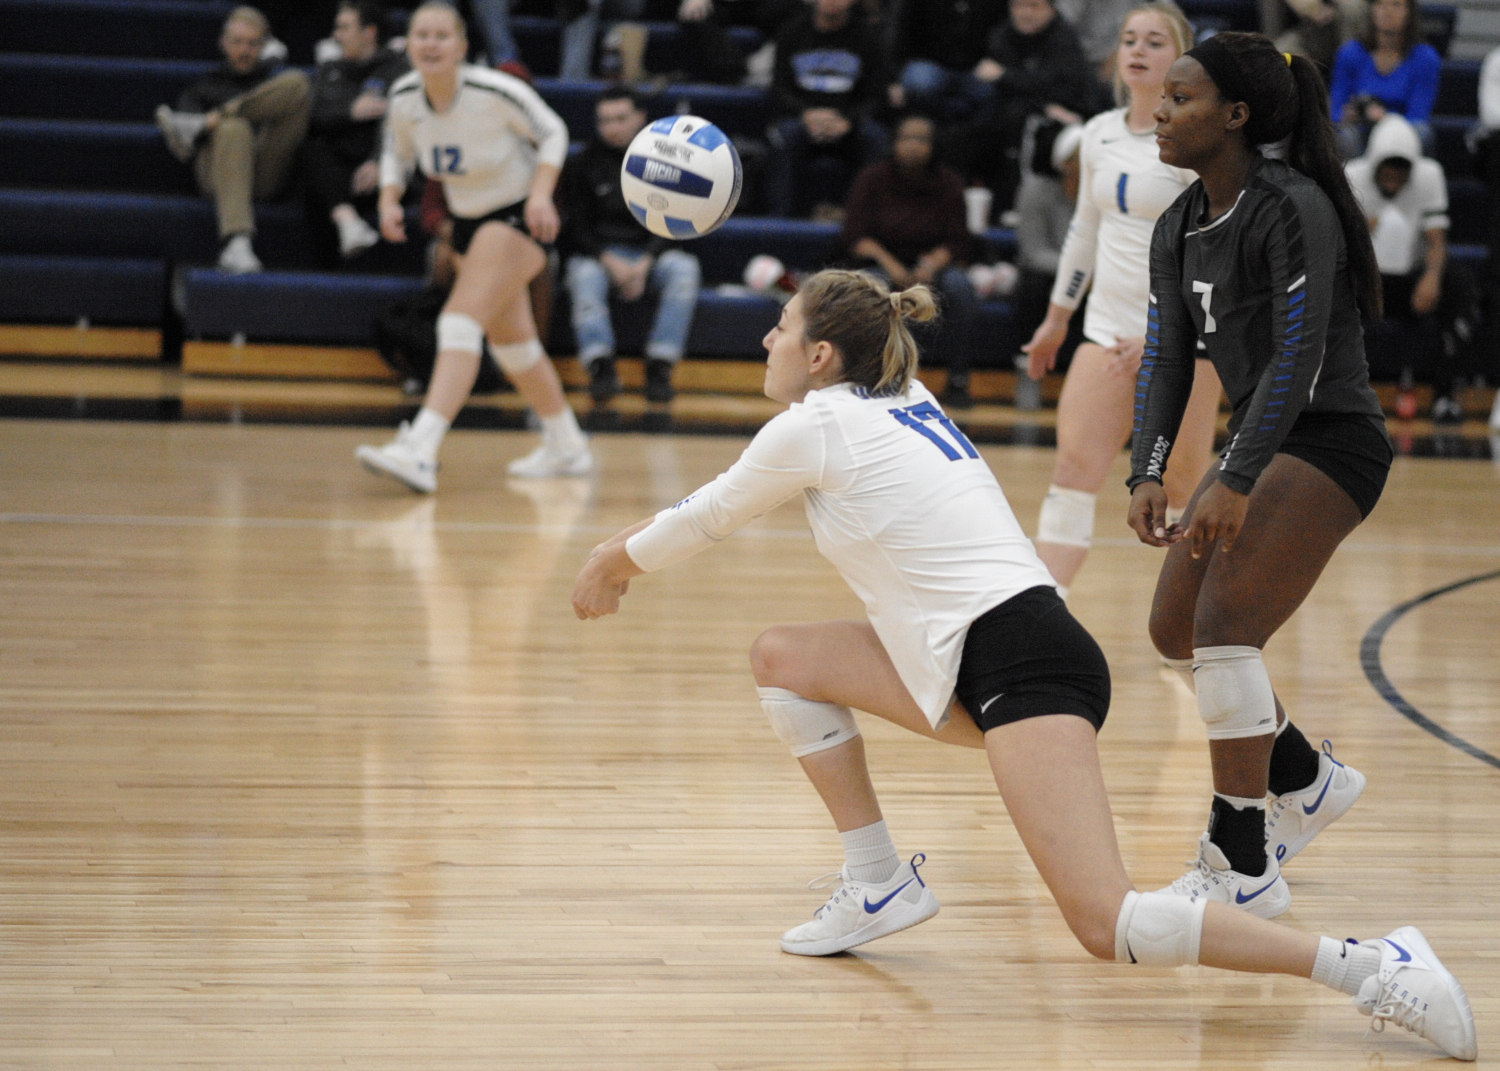 Dilsaver, Parker lead DMACC volleyball team past SWCC, 3-0